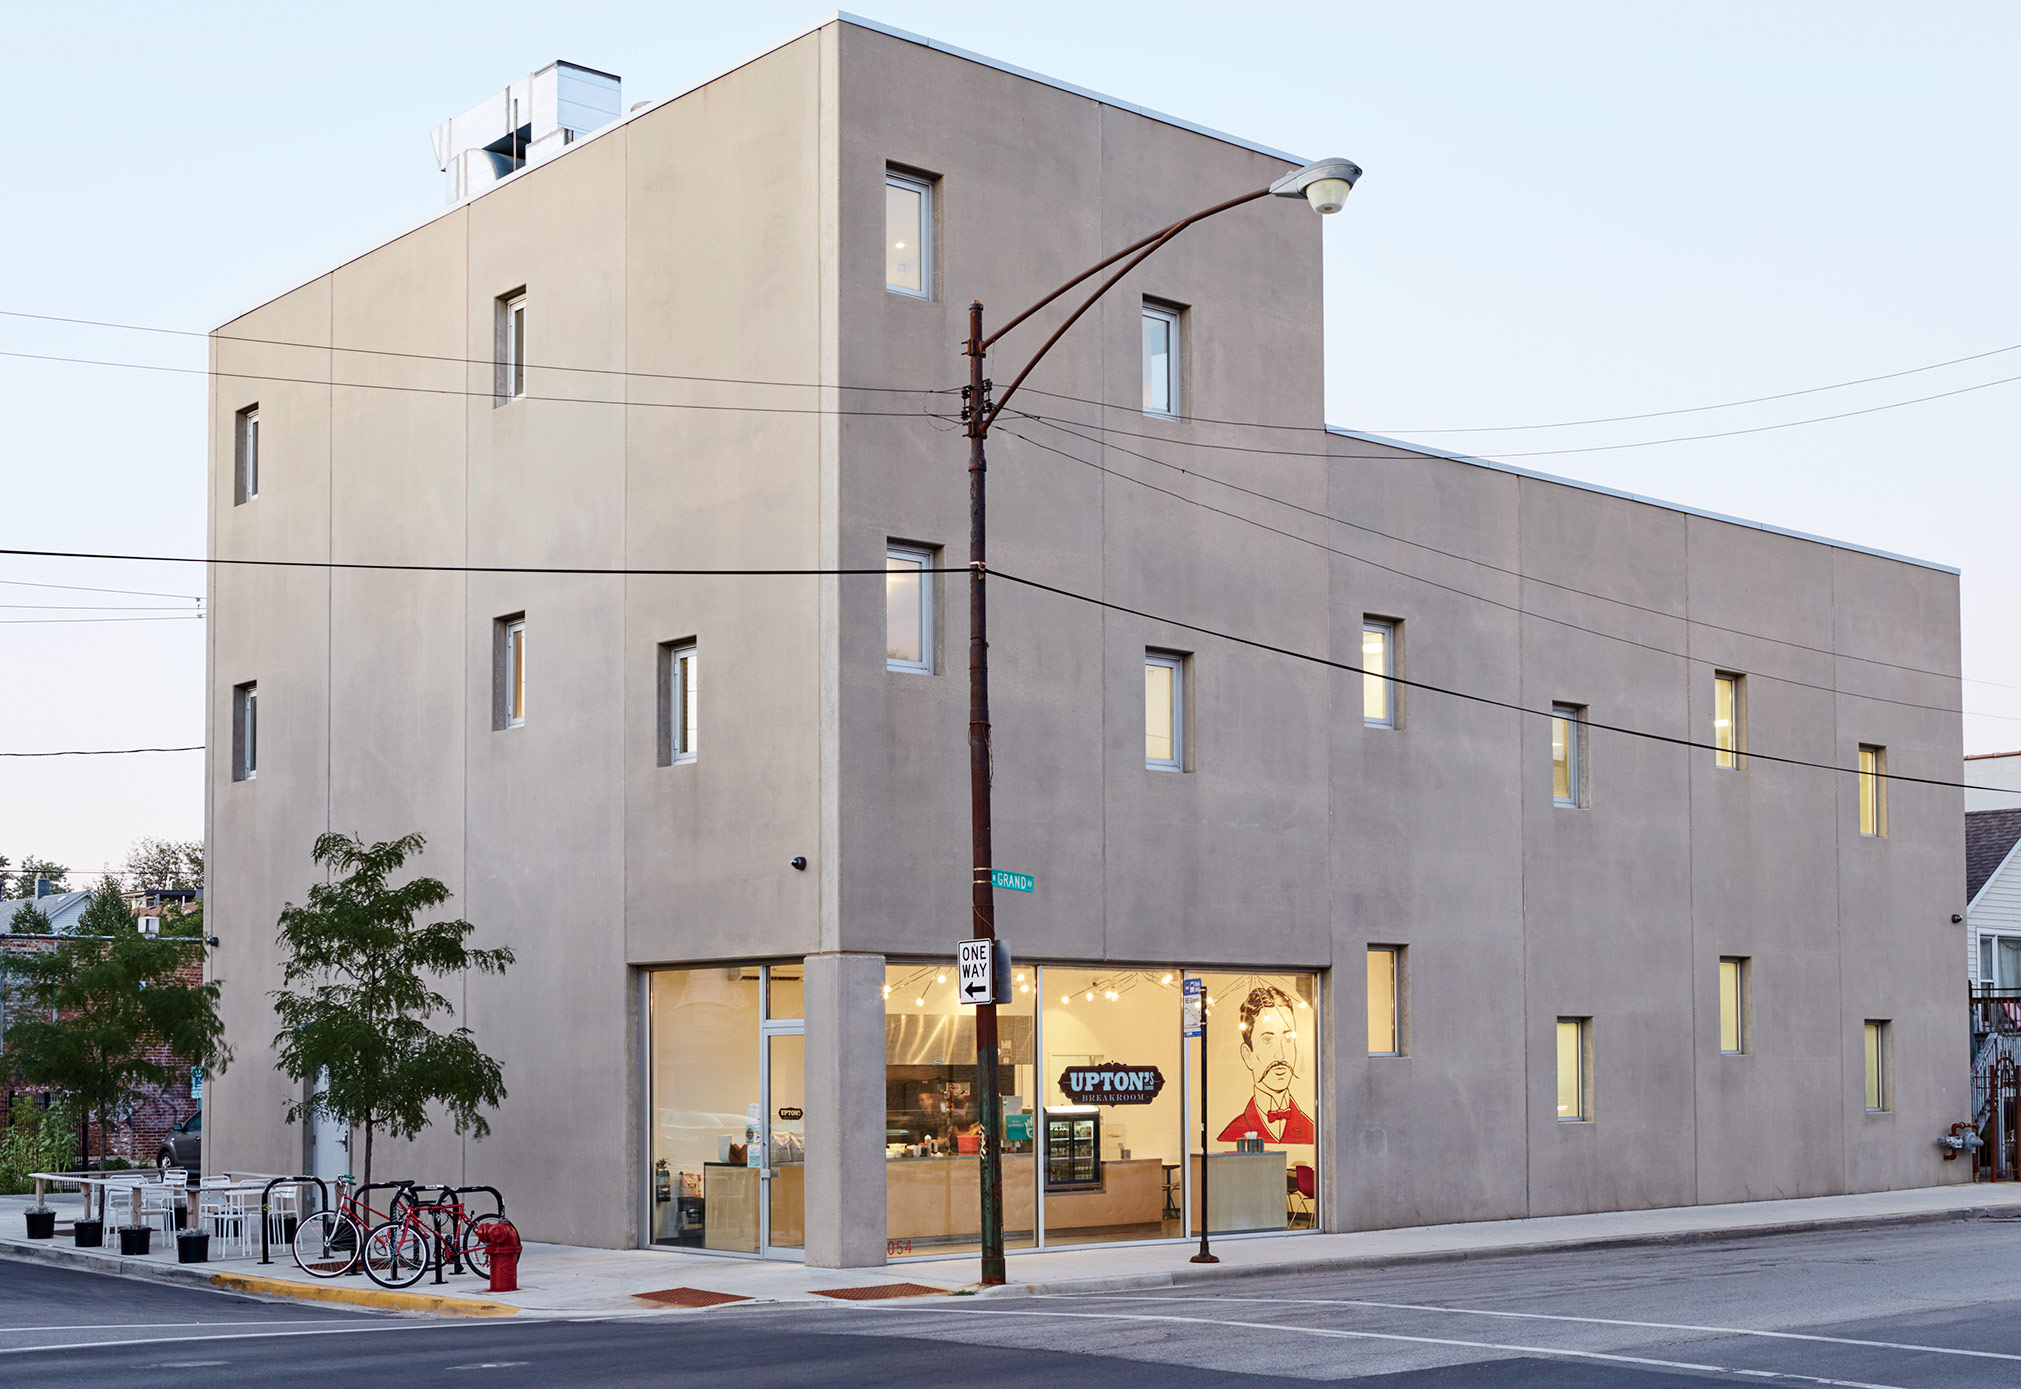 Mondern prefab Chicago live/work space by UrbanLab facade with Dukane Precast concrete panels